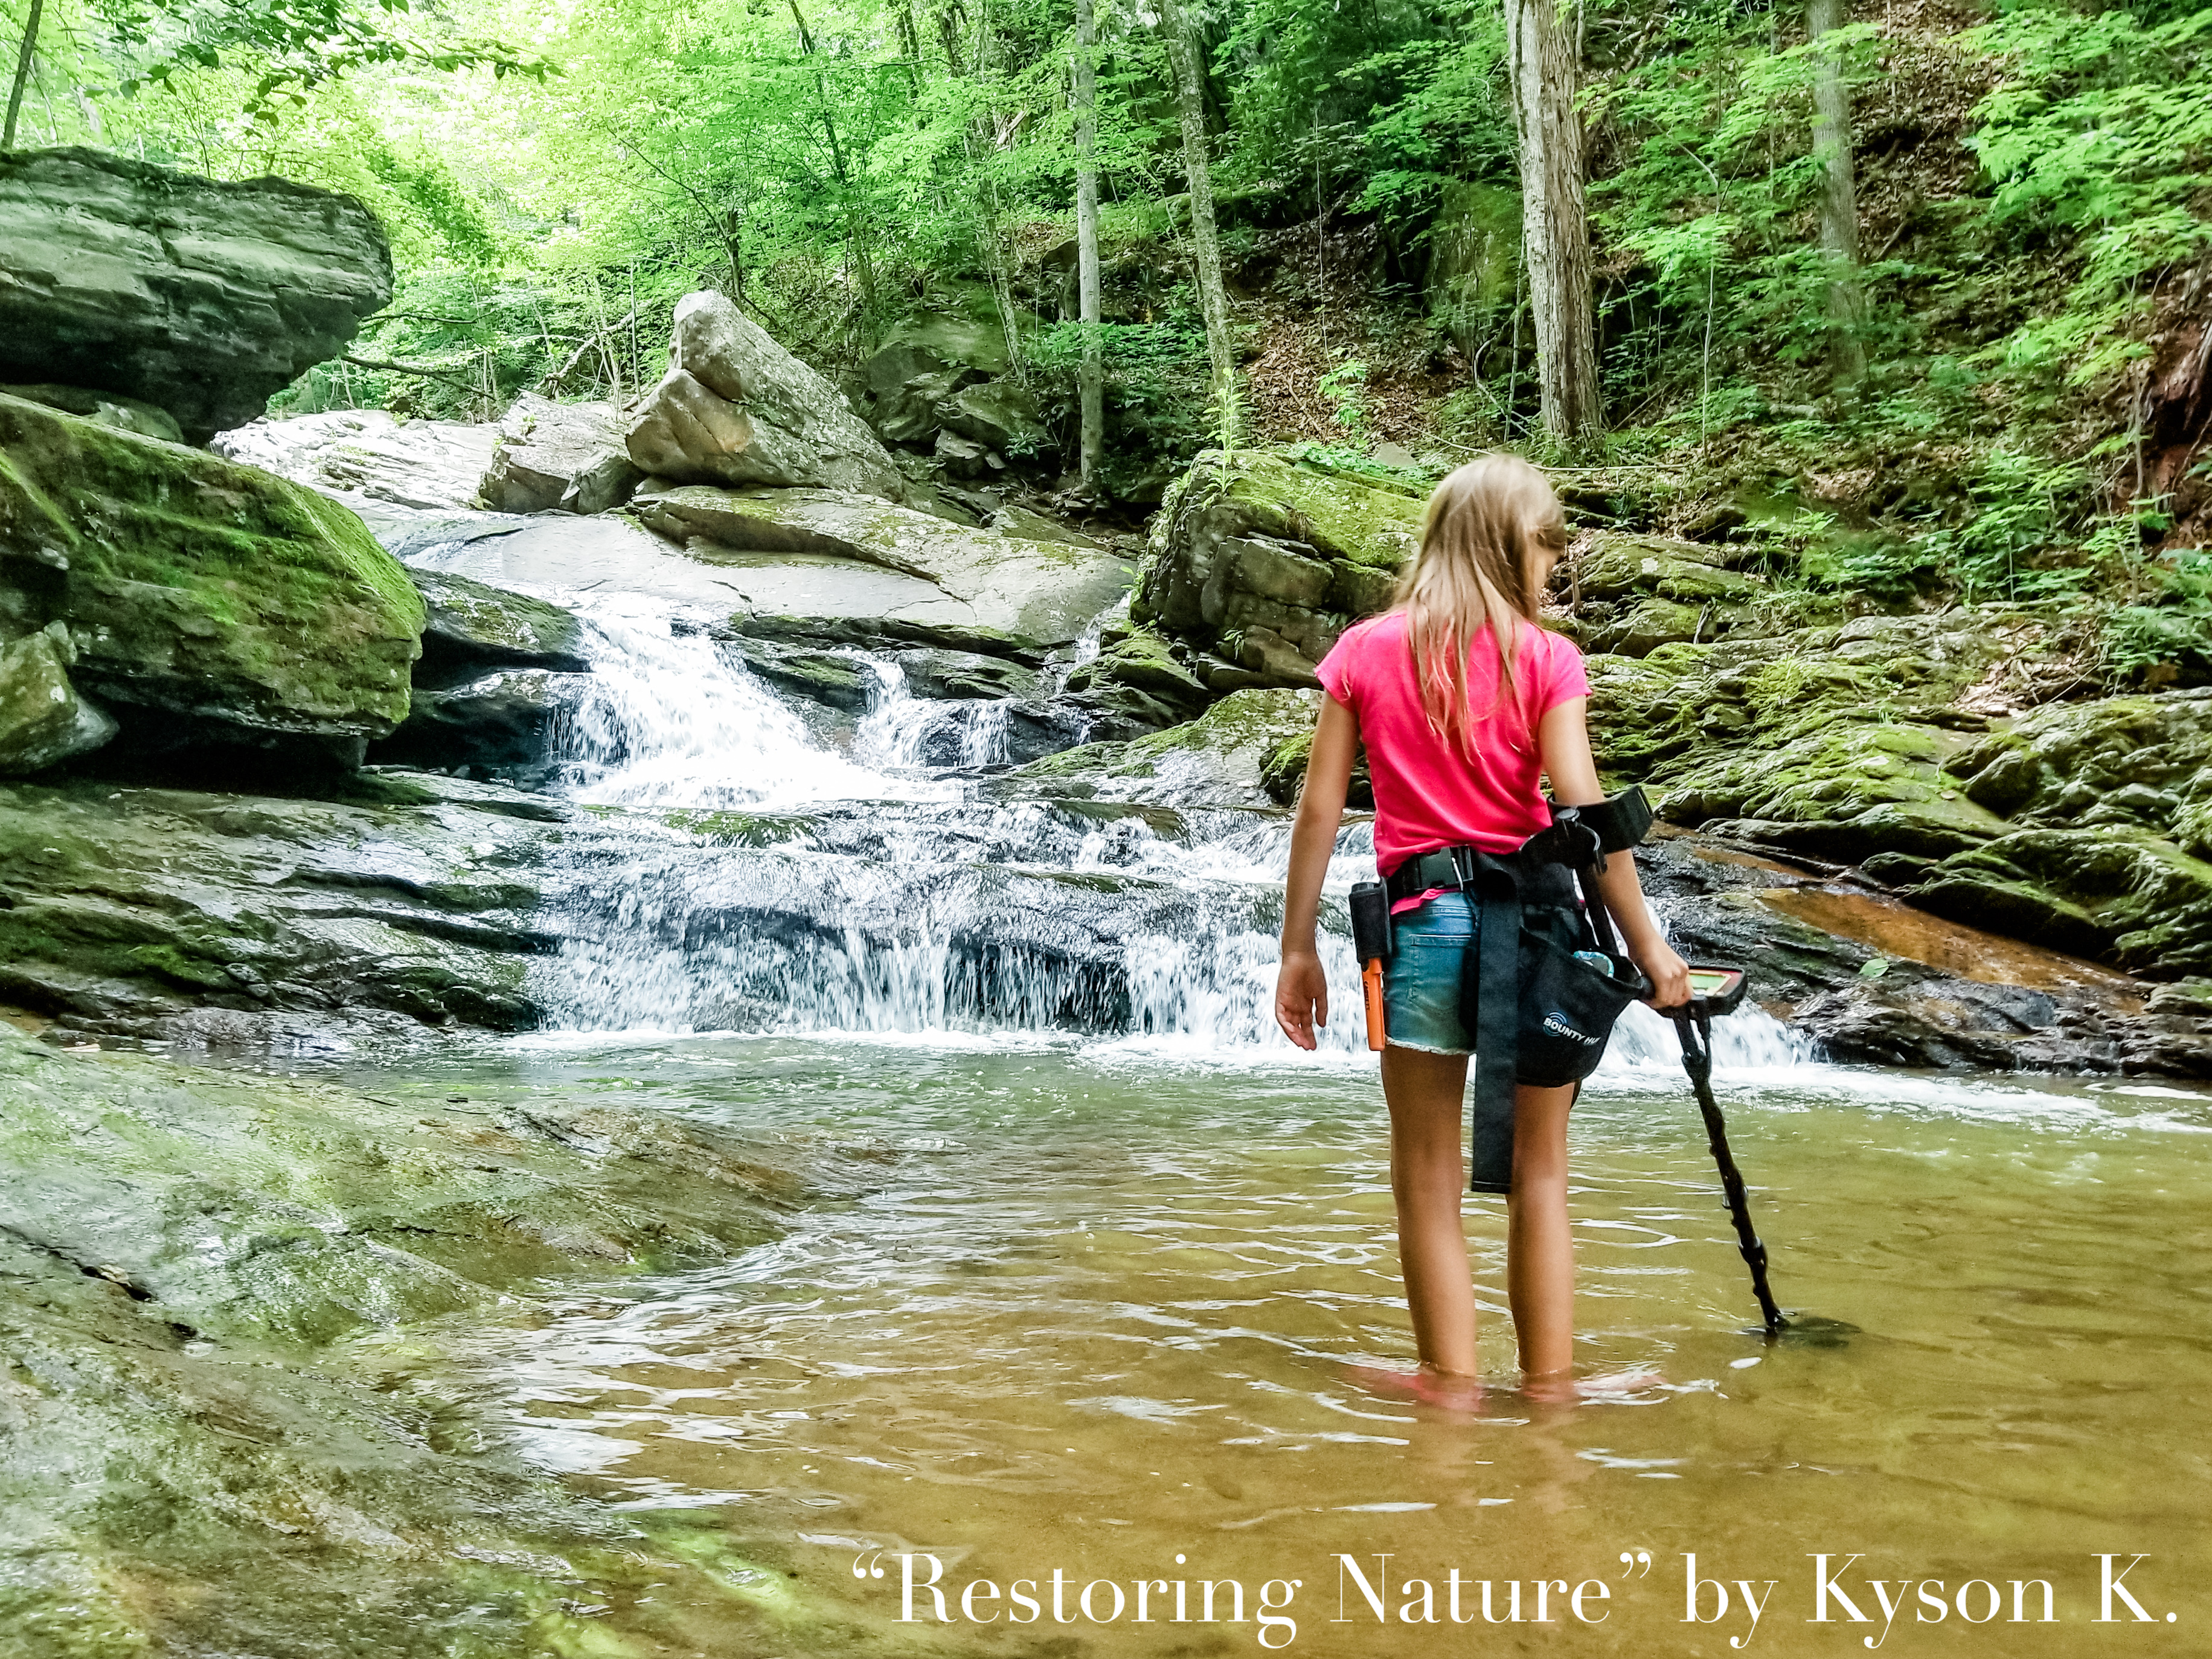 """2020 1st place Intermediate Division: 4-H in Action """"Restoring Nature"""" taken by Kyson K."""